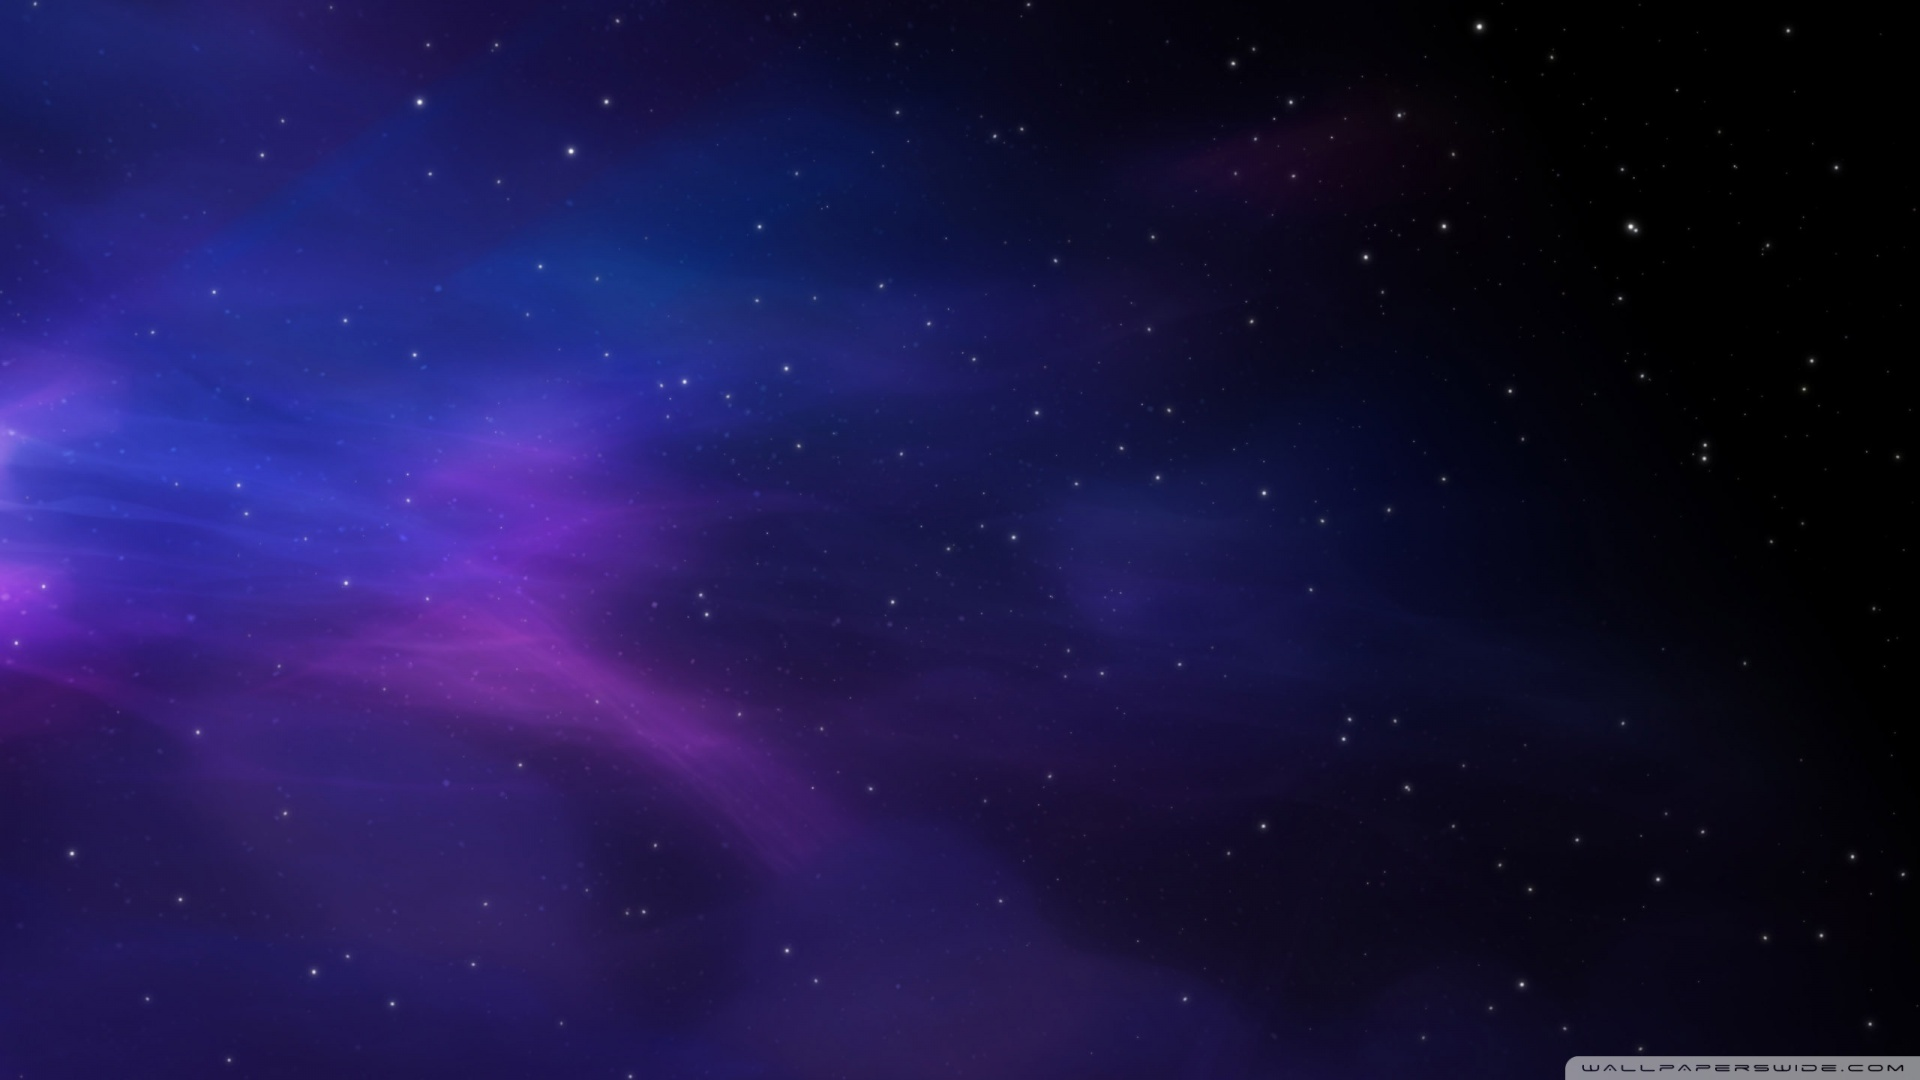 Stars In Space Background - WallpaperSafari